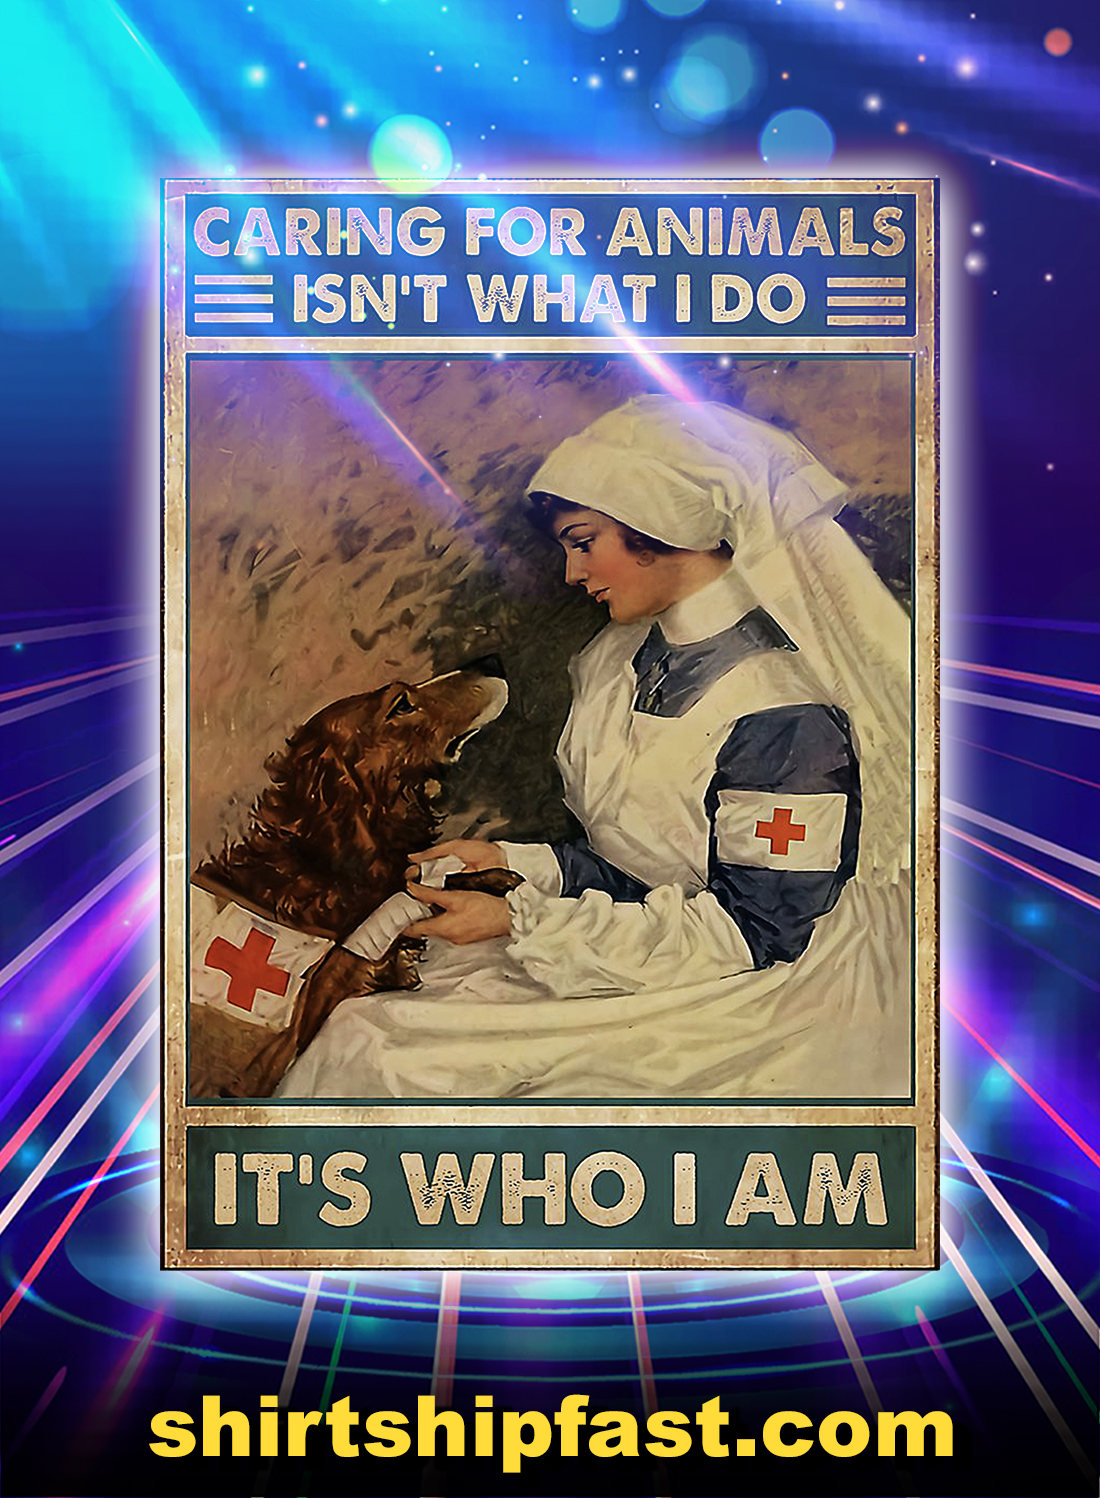 Veterinarian caring for animals isn't what i do it's who i am poster - A4